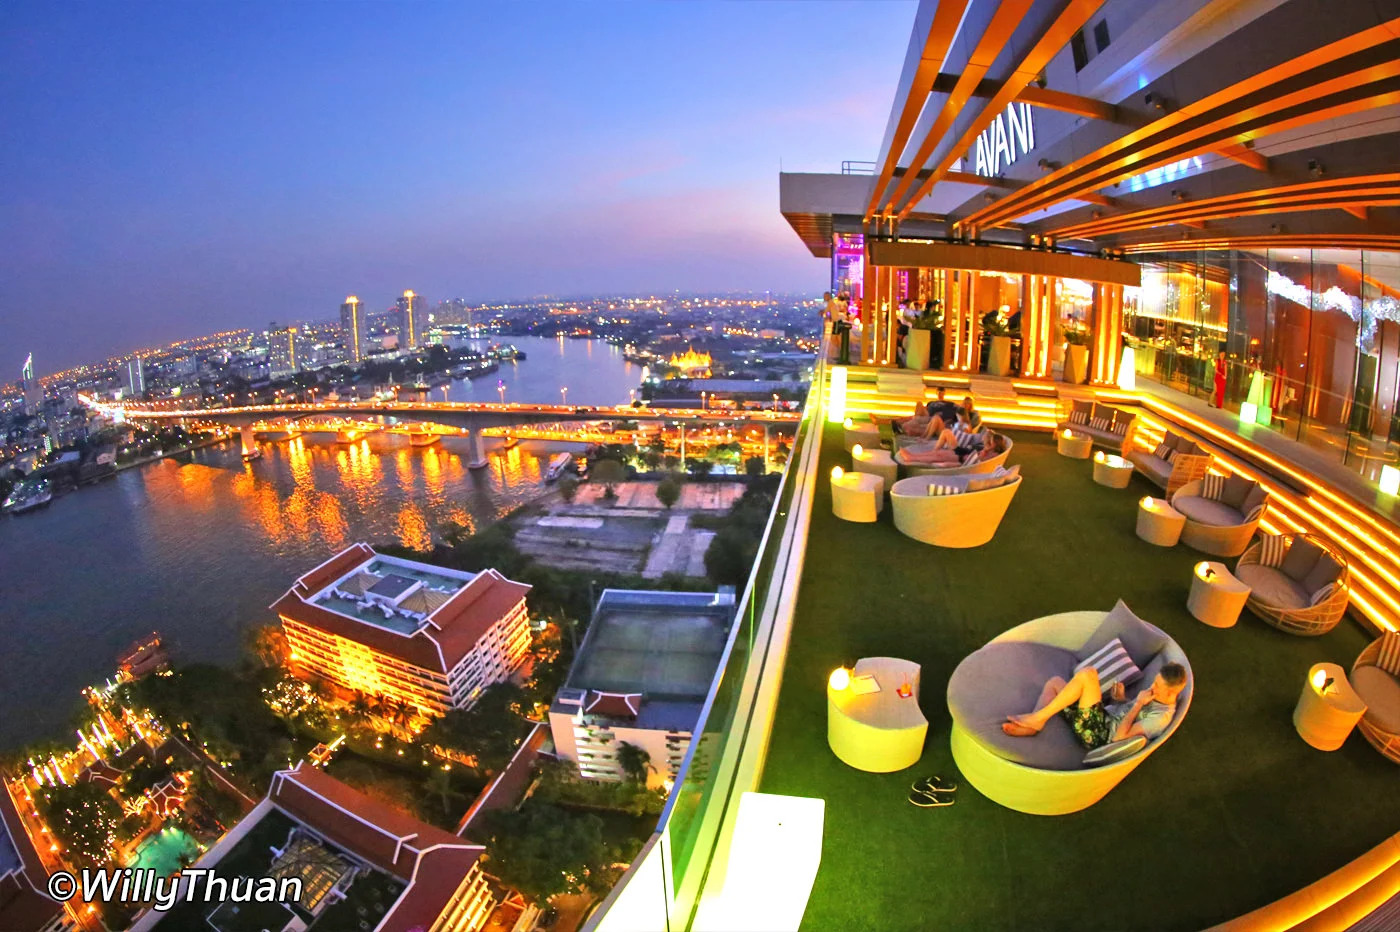 Seen Rooftop Bar at Avani Hotel Bangkok